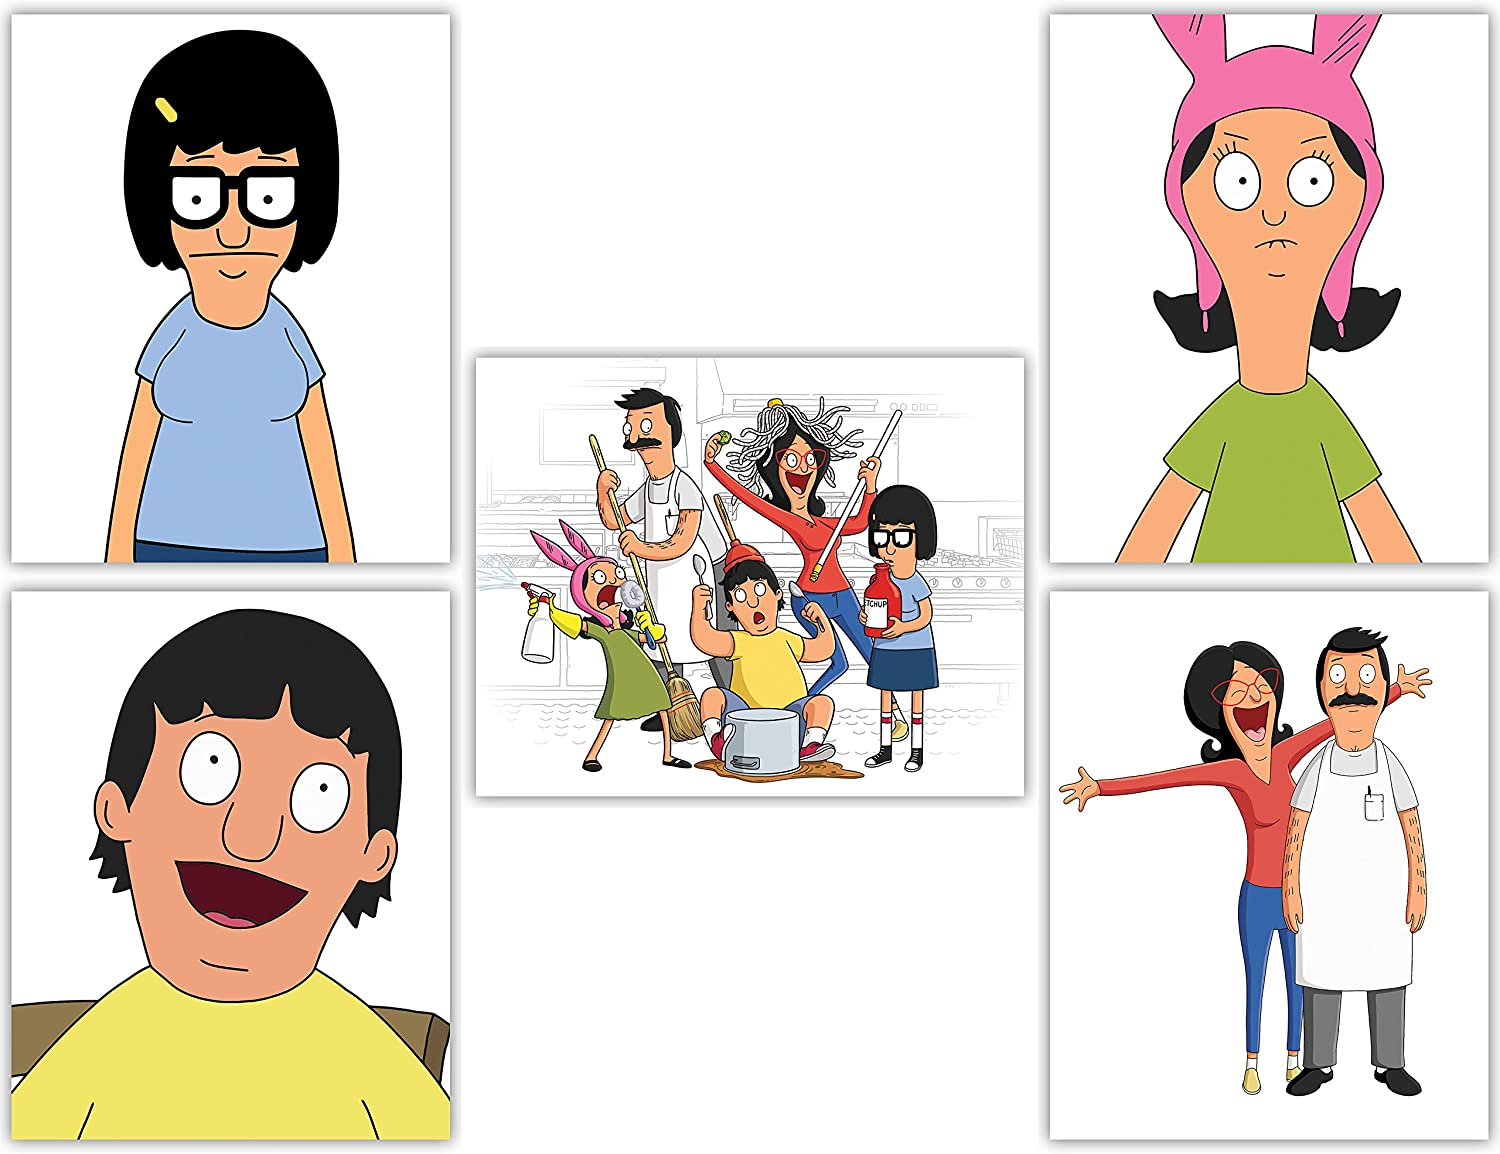 Amazon Com Bob S Burgers Wall Art Poster Collection Tina Louise Gene And Linda Belcher In Our Wall Decor Series Set Of 5 8x10 Photos Posters Prints